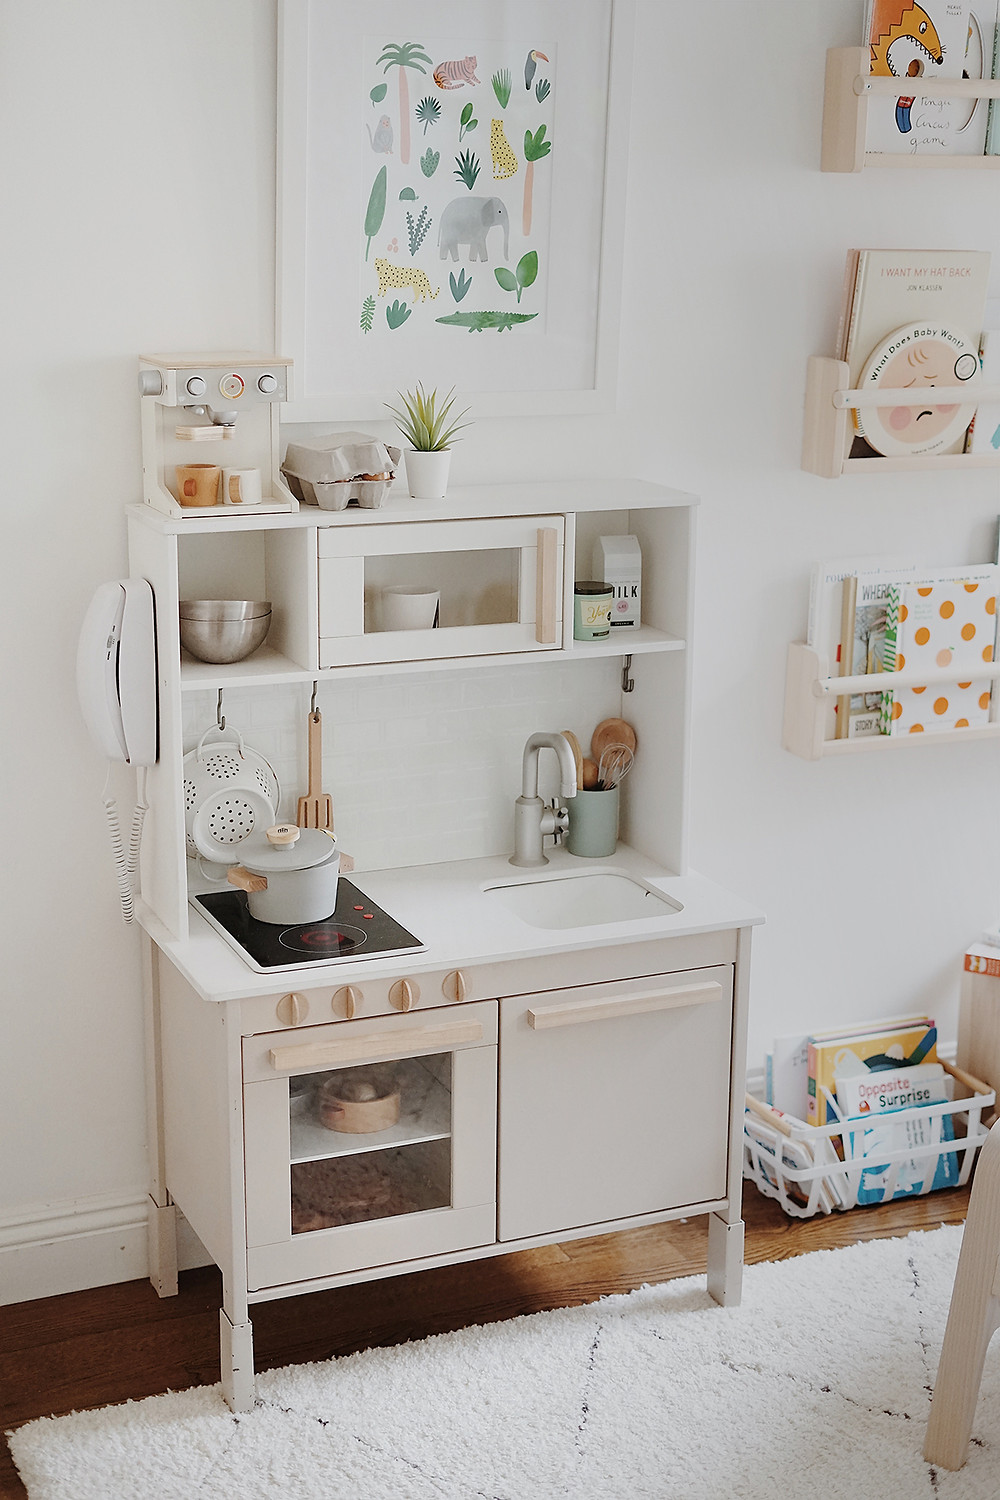 A childrens white IKEA play kitchen in simple white playroom with a patterned neutral area rug and bookshelves